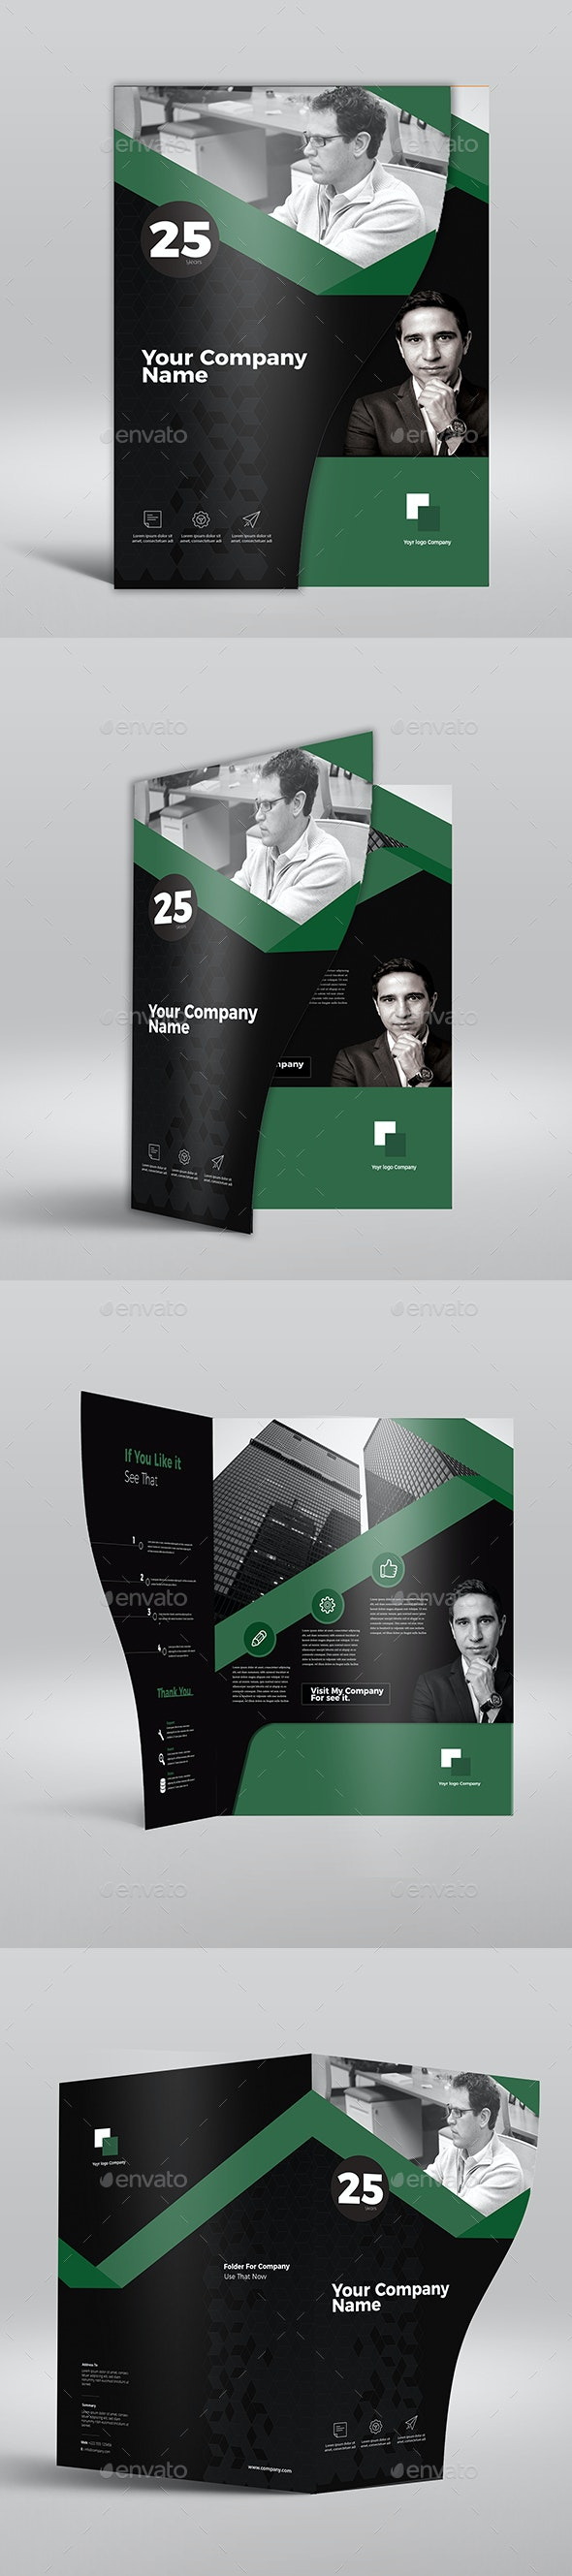 Business Company Folder - Packaging Print Templates